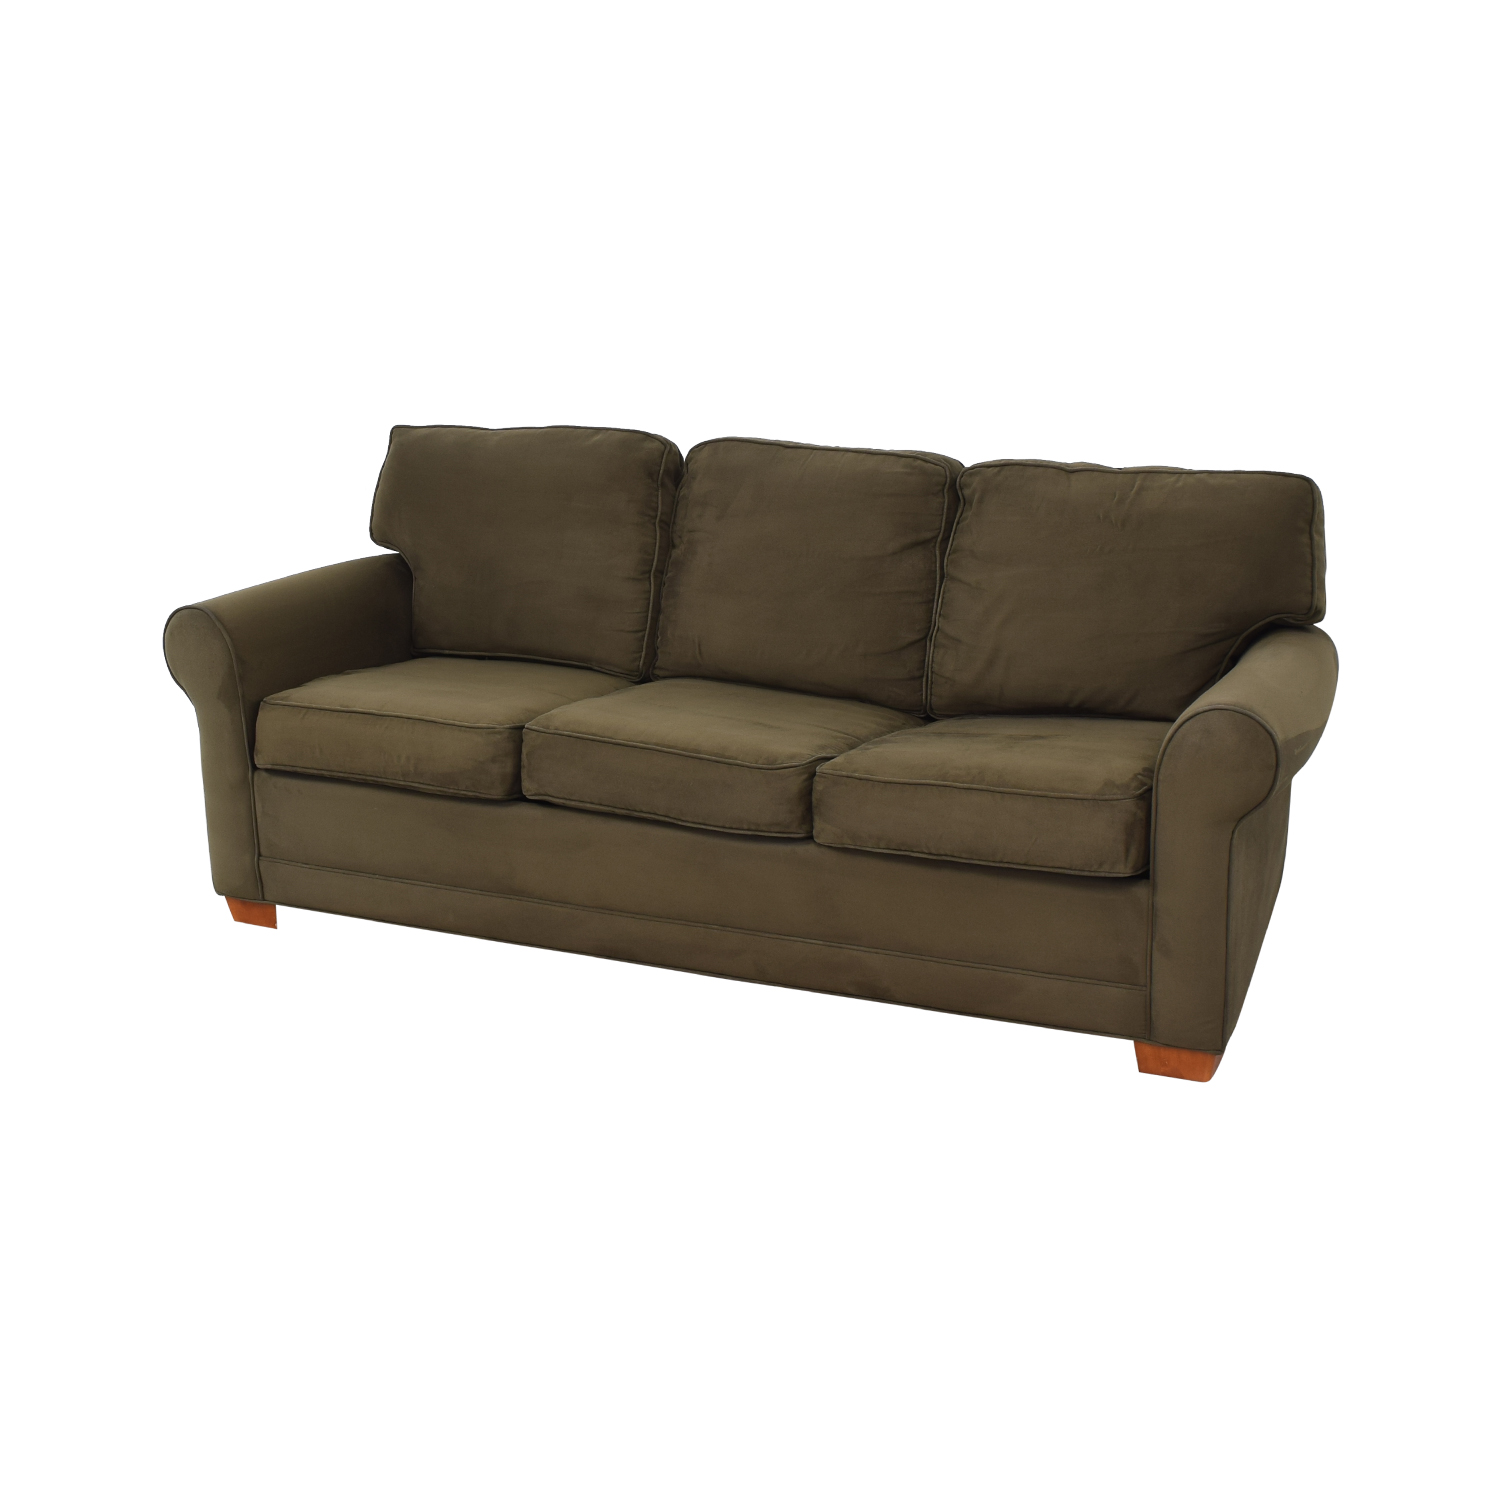 Raymour & Flanigan Rolled Arm Three Seat Sofa Bed sale